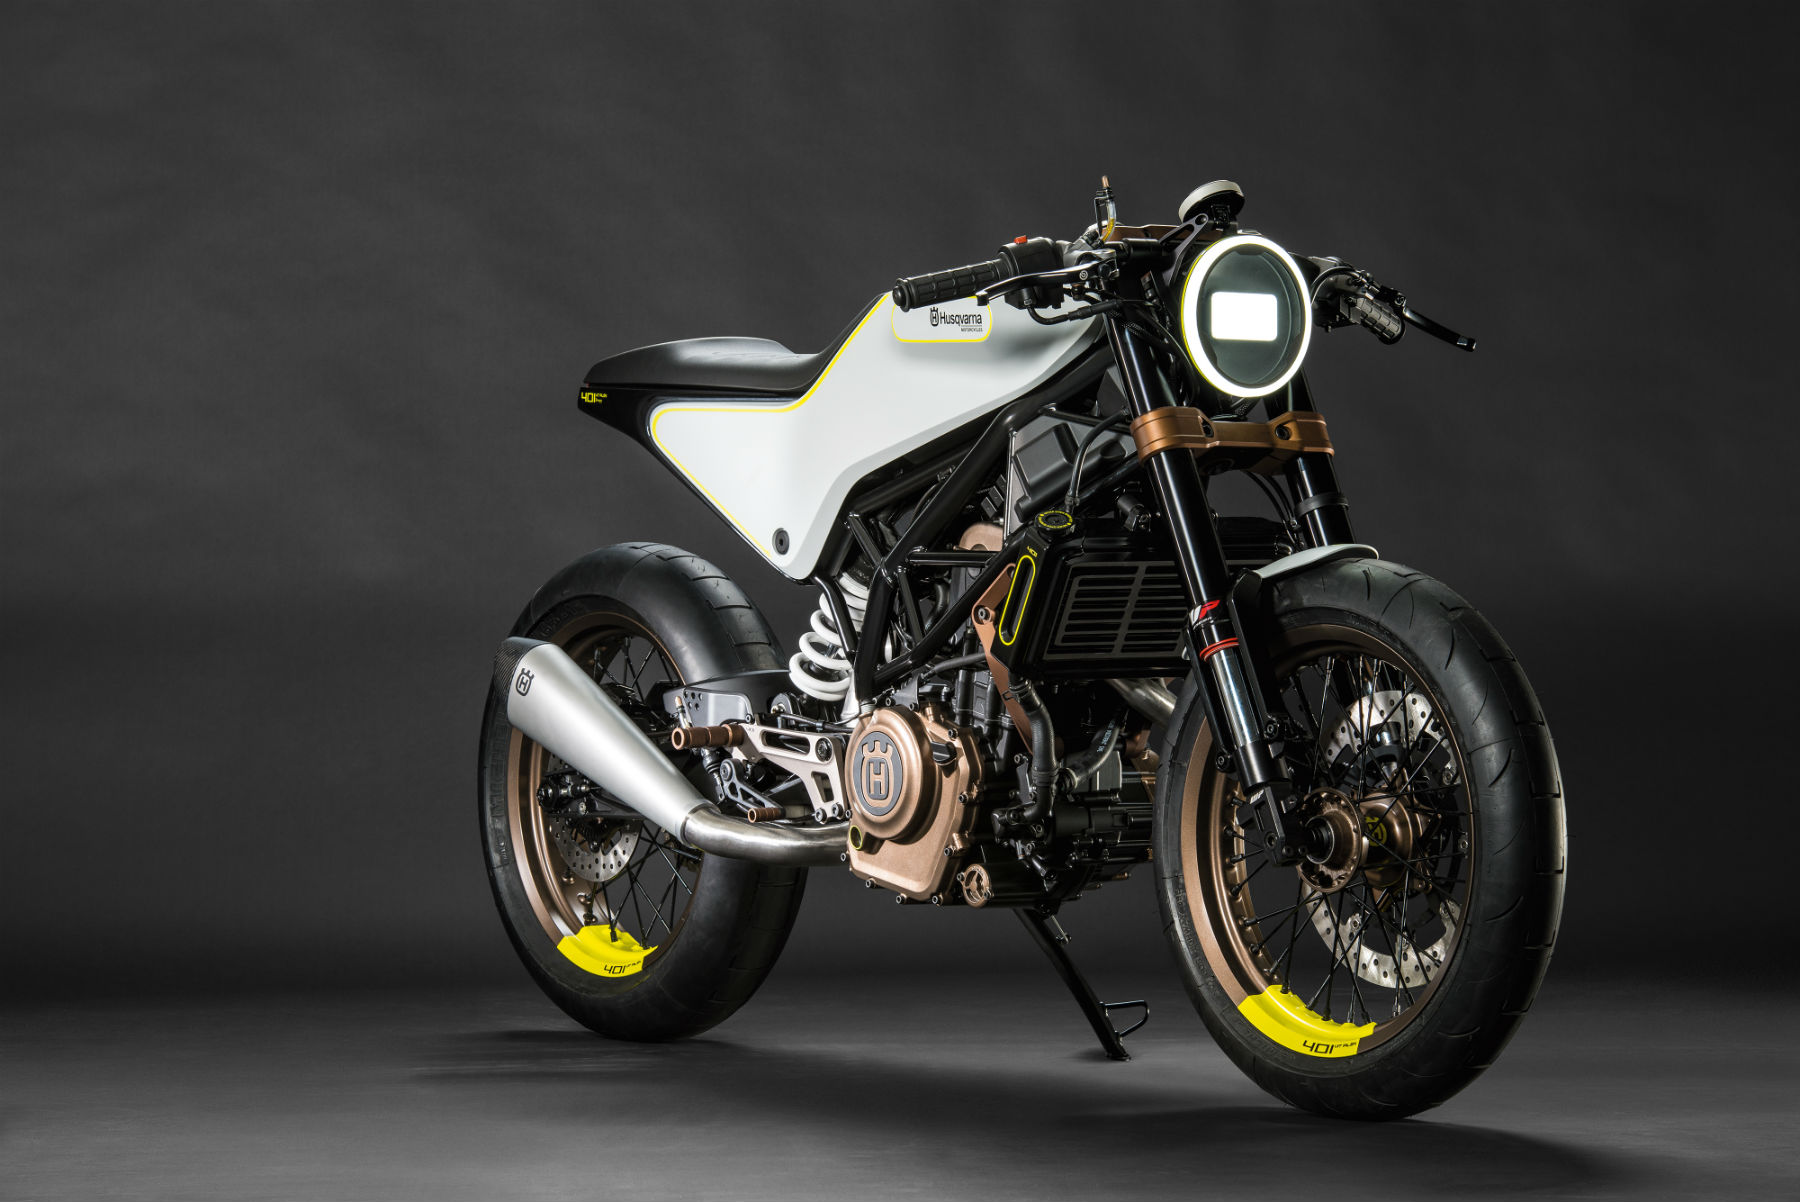 Husqvarna Vitpilen likely to be manufactured in India